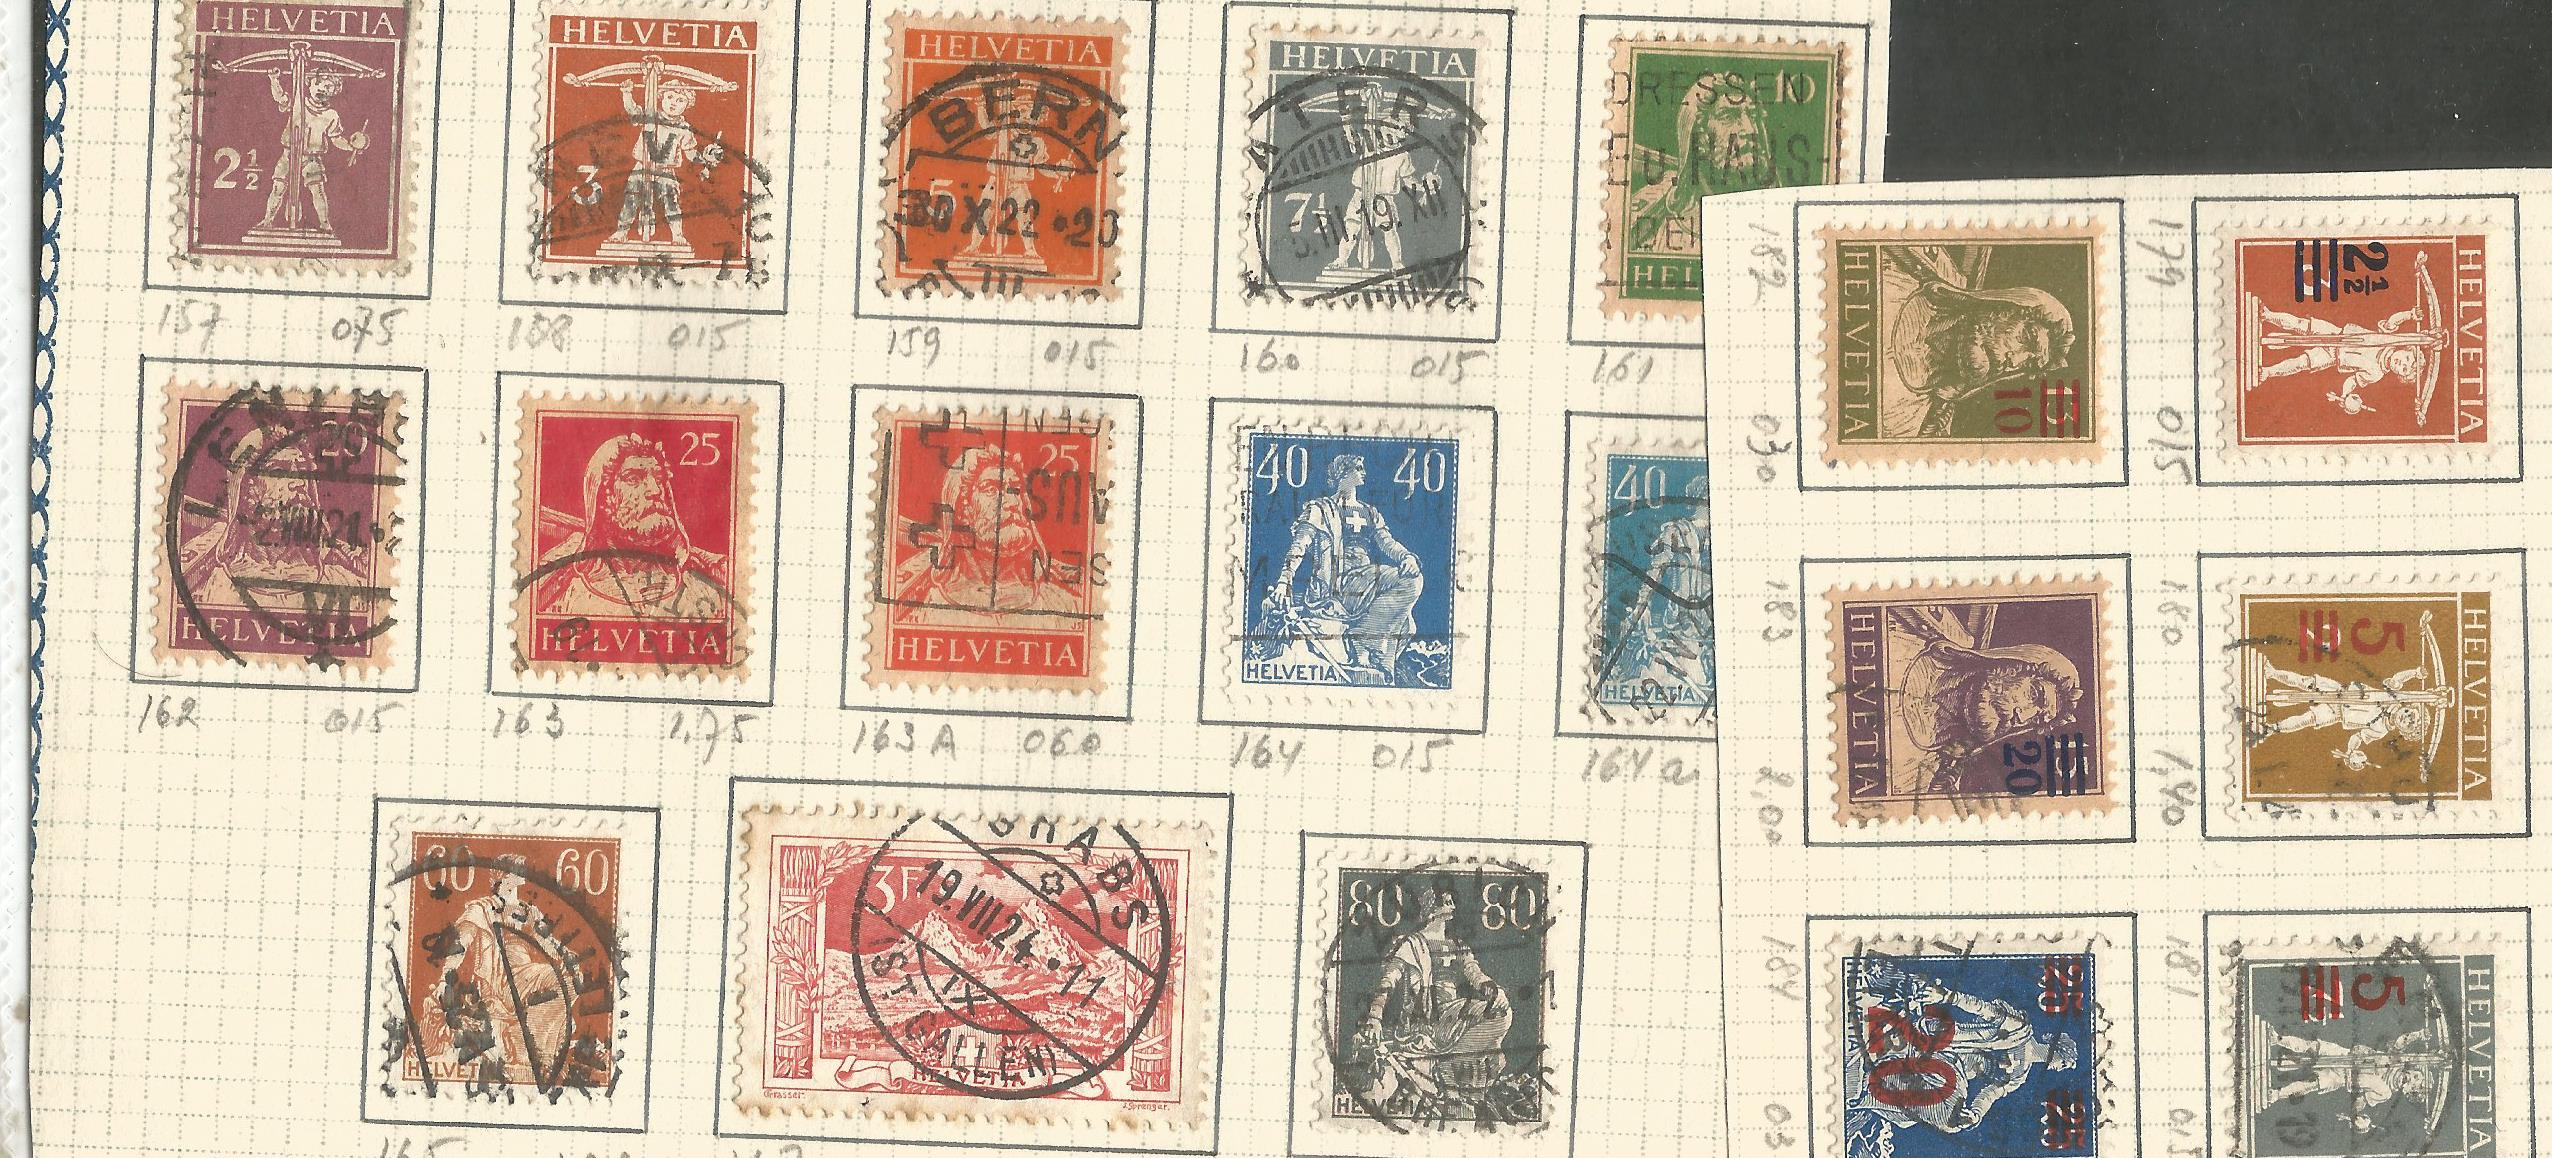 Swiss stamp collection. 22 stamps. 1908/1919. Mint and used. Good condition. We combine postage on